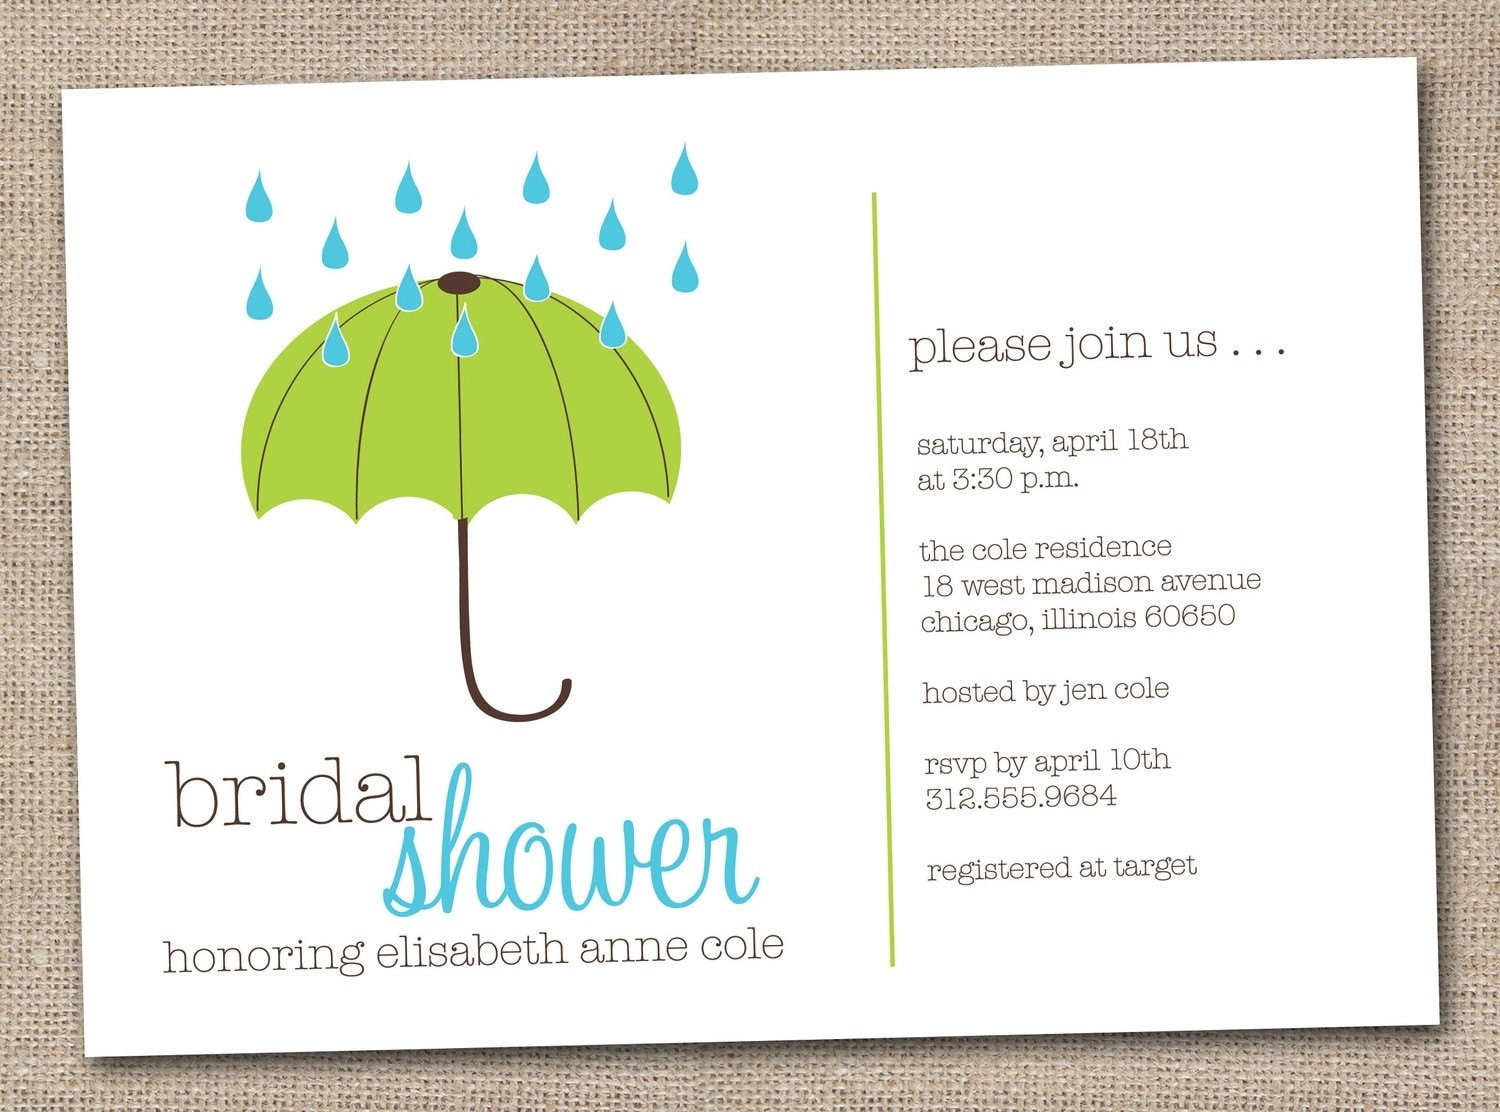 Printable bridal shower invitations green by for Bridal shower email invitations